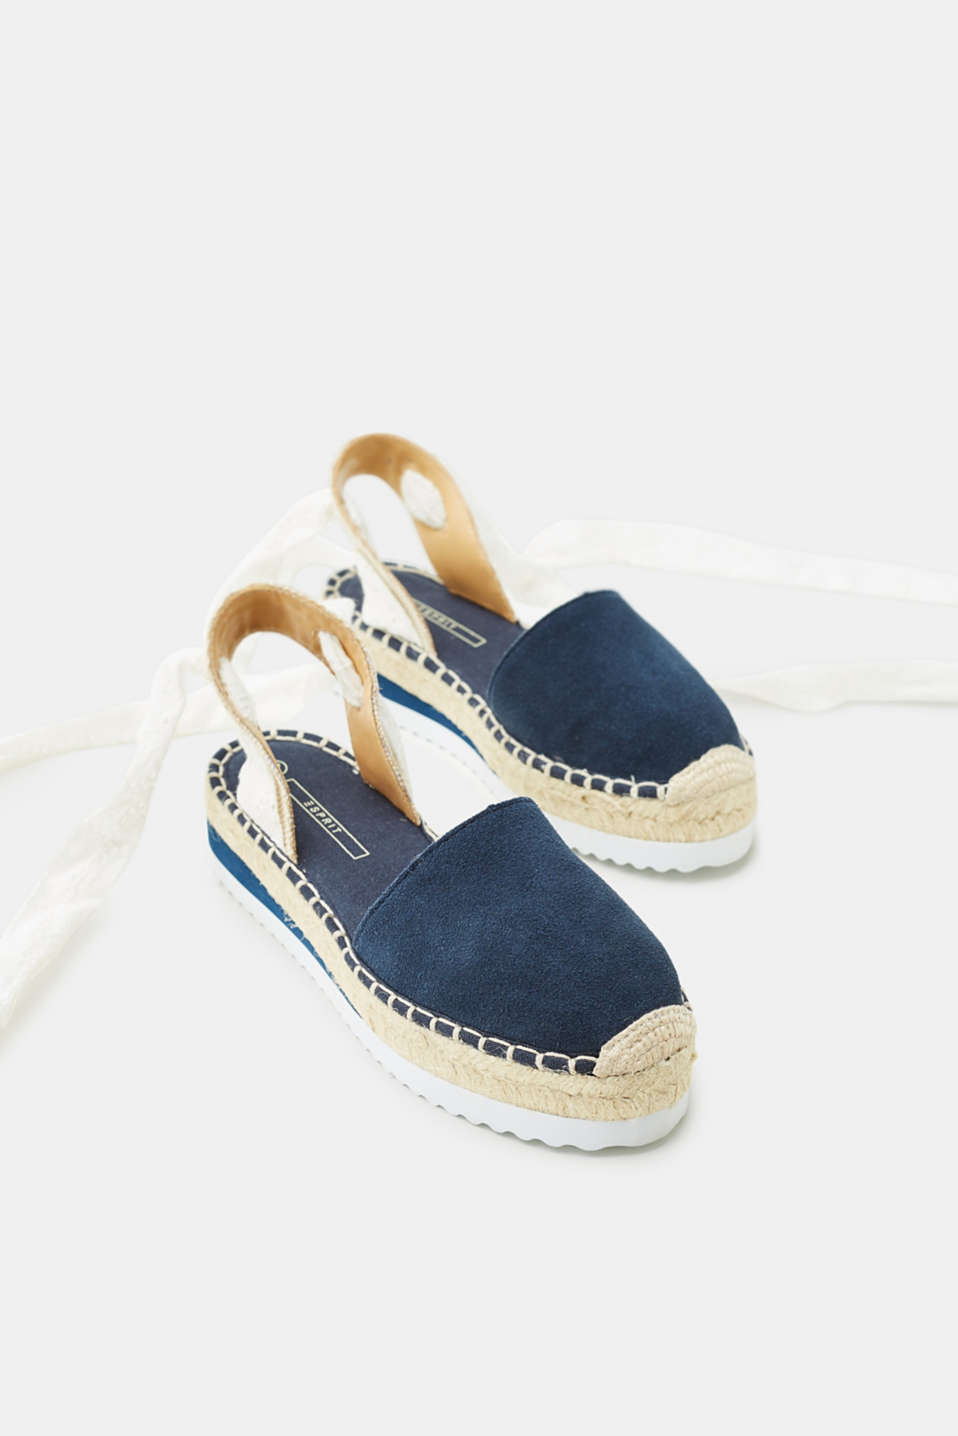 Leather espadrilles with platform soles